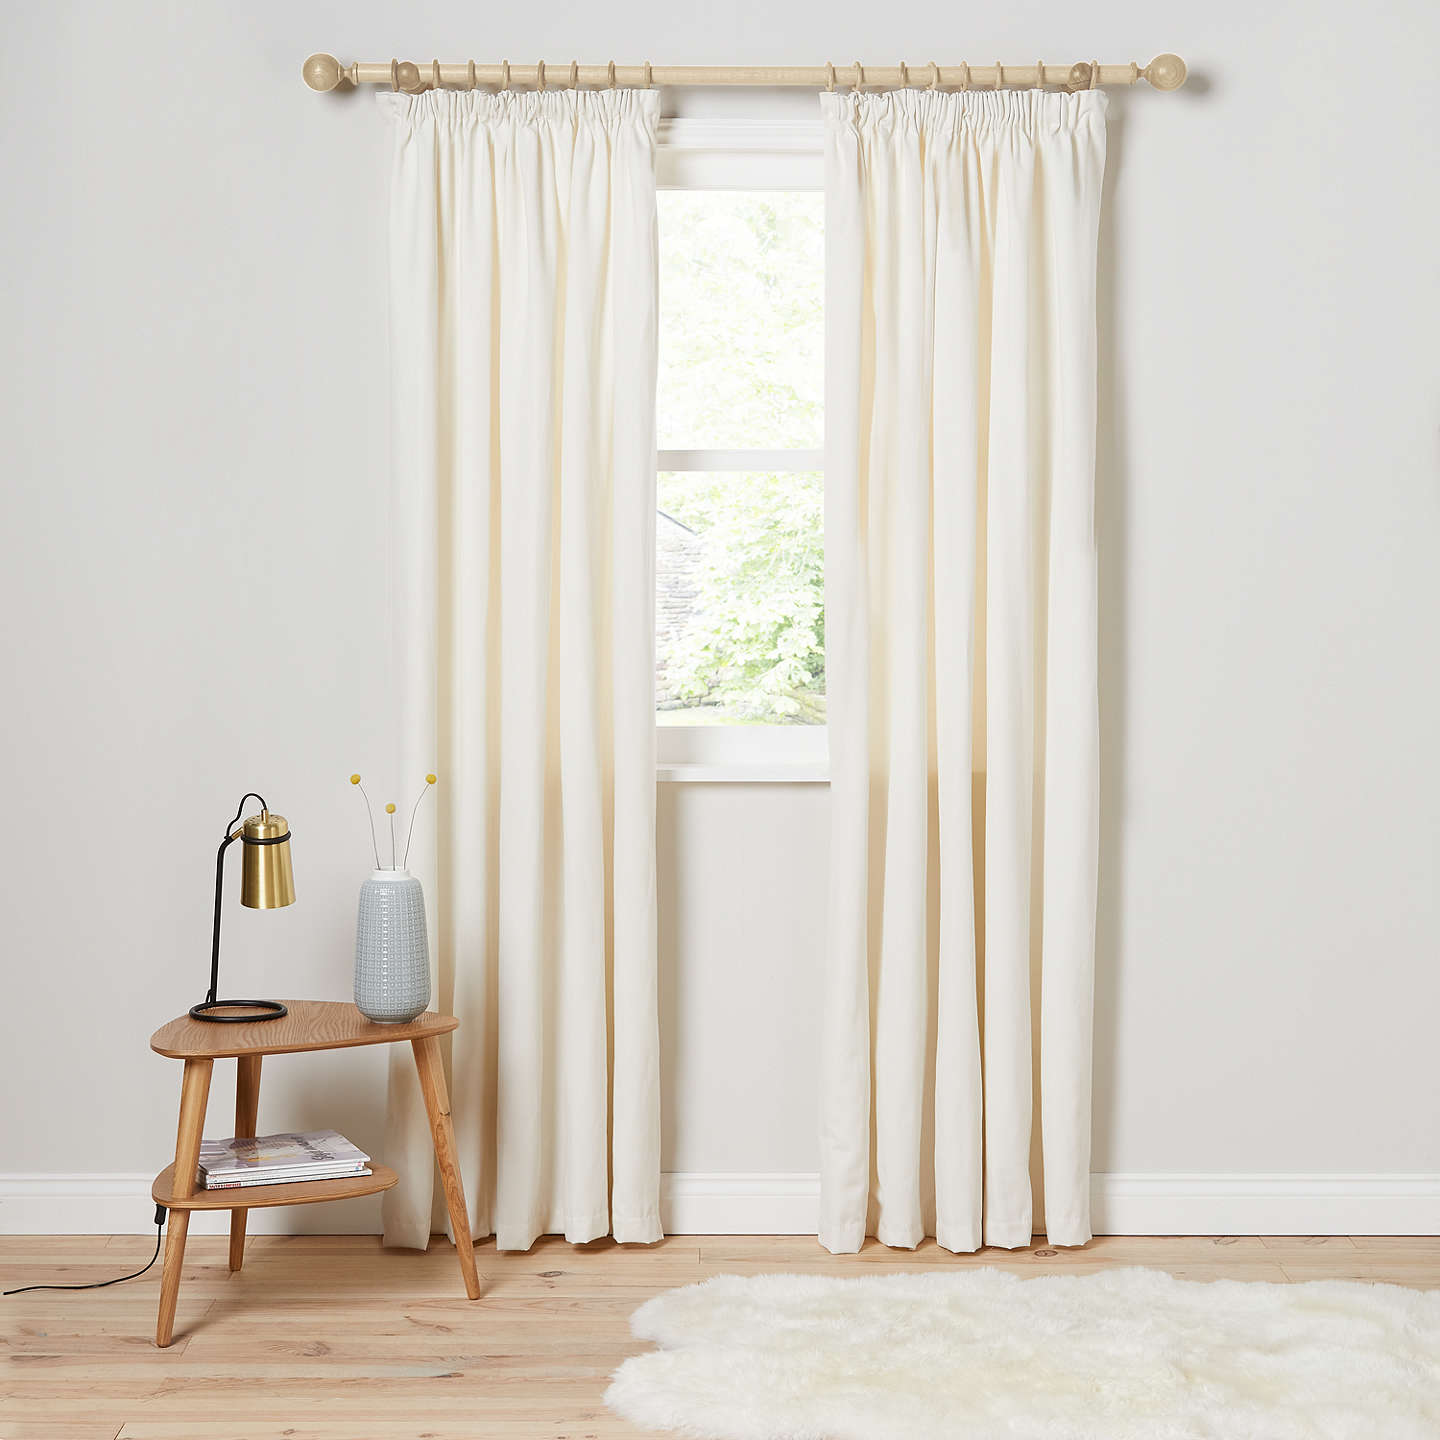 BuyJohn Lewis Arlo Pair Lined Pencil Pleat Curtains, Lily, W167 x Drop 137cm Online at johnlewis.com